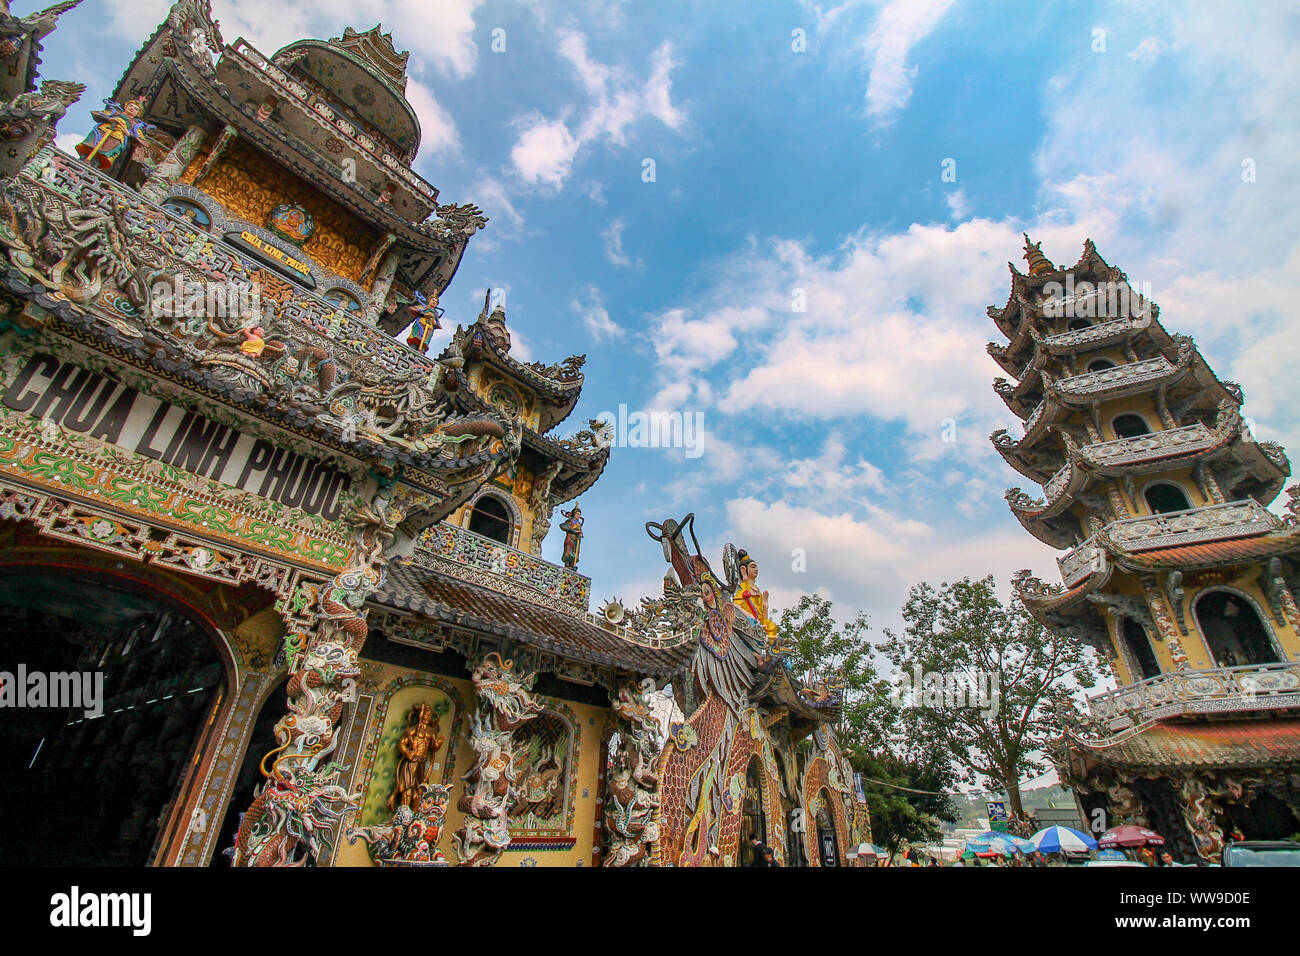 Linh Phuoc Pagoda or Ve Chai Pagoda, buddhist shrine covered in mosaic art in Da lat, Vietnam and free of charge to visit for both locals and tourist Stock Photo